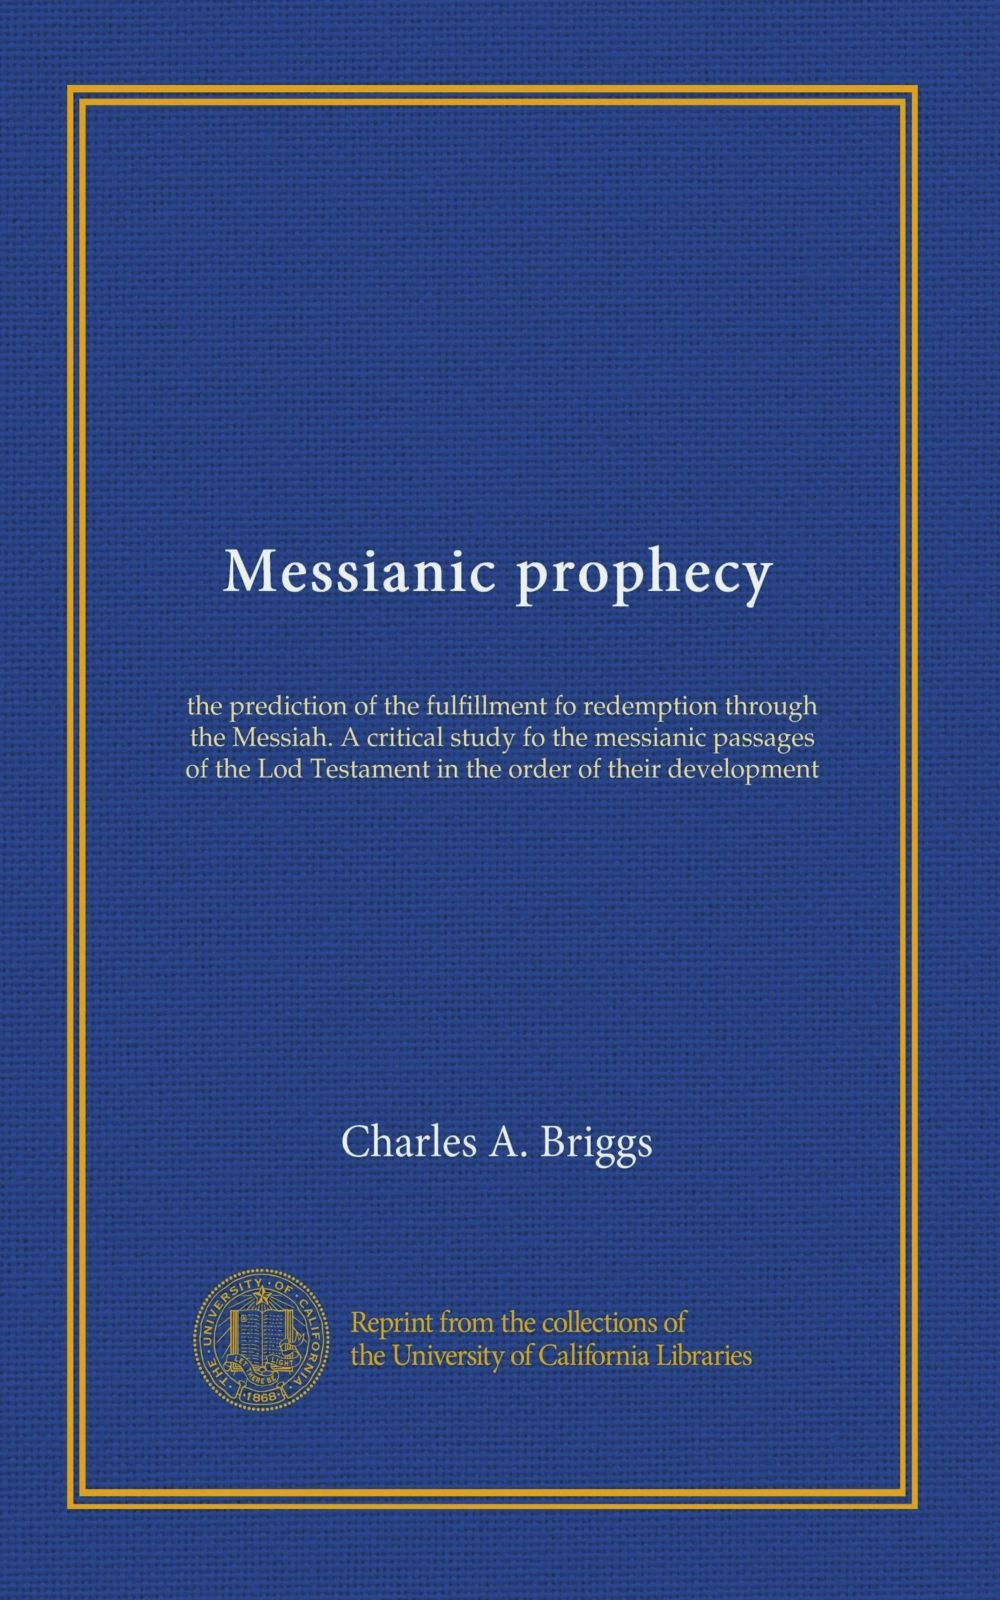 Download Messianic prophecy: the prediction of the fulfillment fo redemption through the Messiah. A critical study fo the messianic passages of the Lod Testament in the order of their development pdf